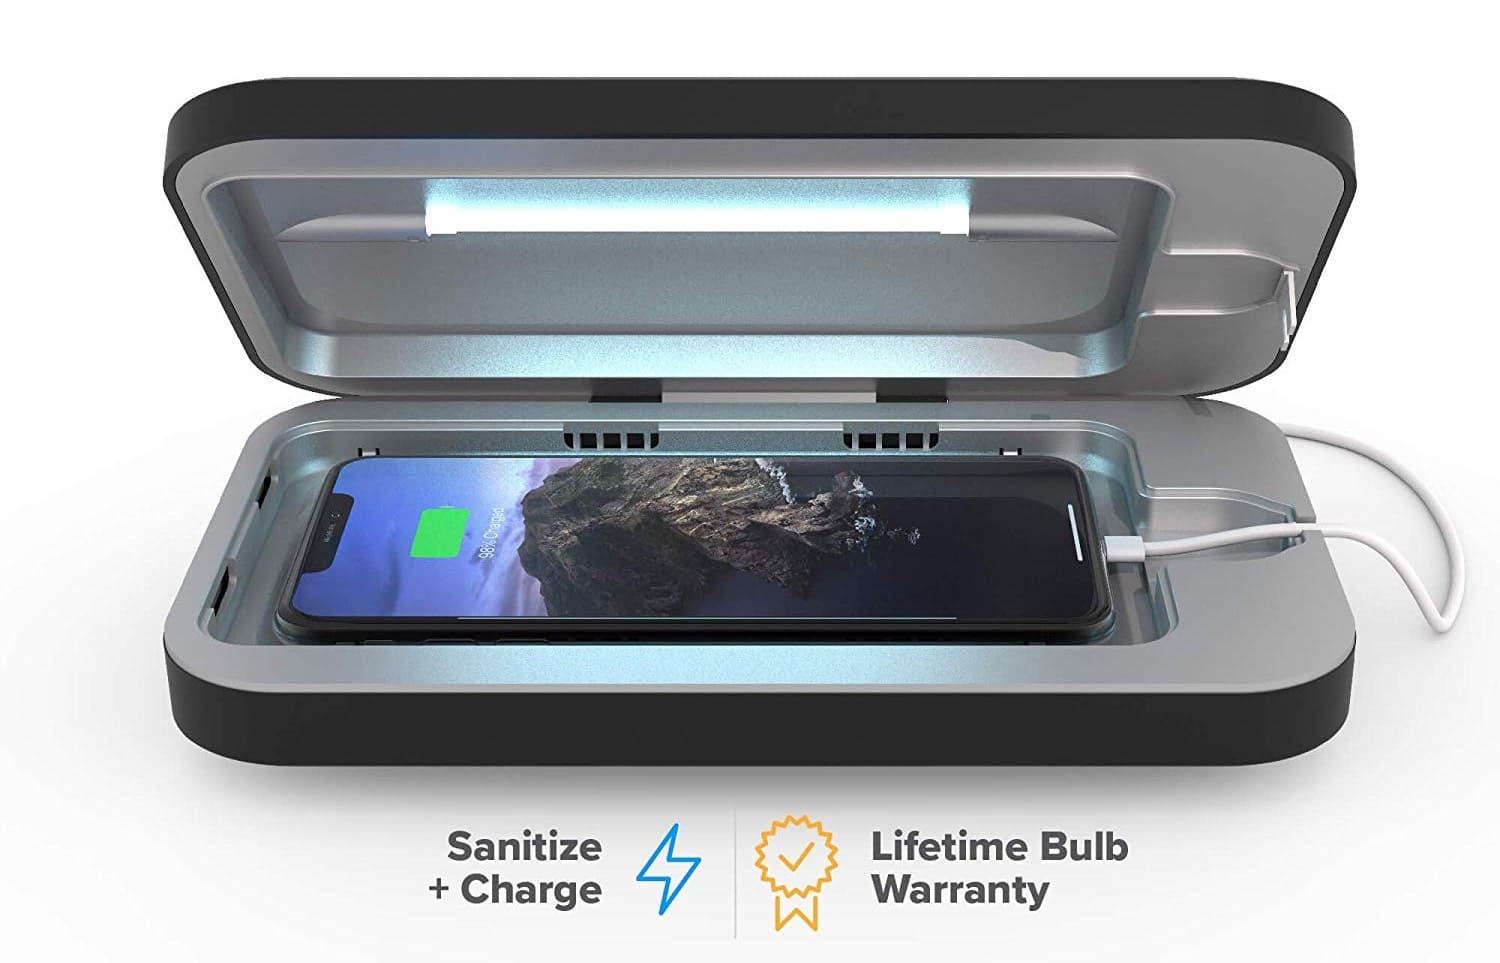 PhoneSoap 3 UV Cell Phone Sanitizer and Dual Universal Cell Phone Charger -min